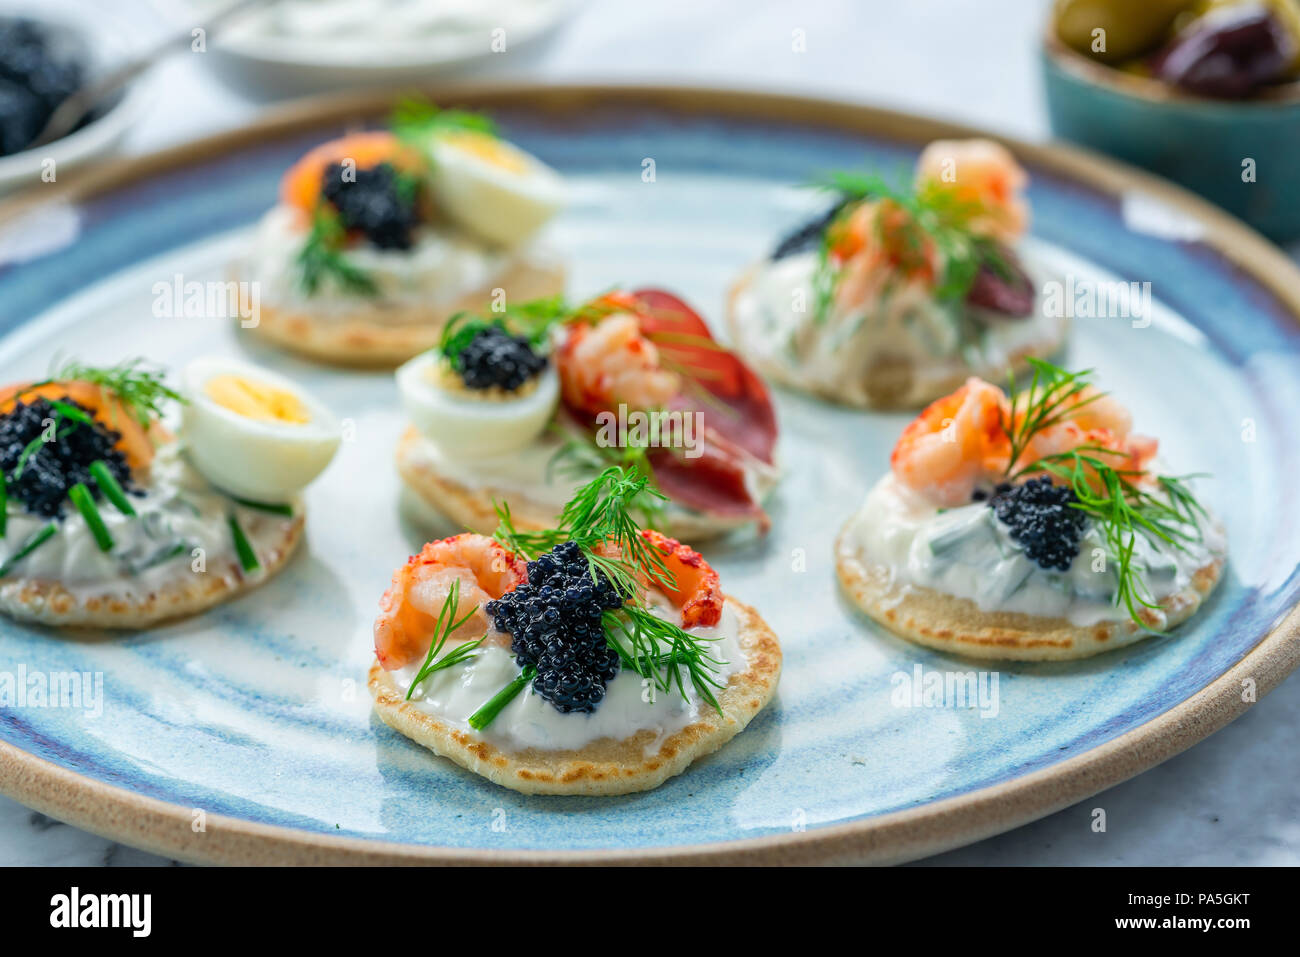 Selection of cocktail blinis with salmon, cured bresaola, crayfish, caviar, quail eggs and sour cream - gourmet party food Stock Photo